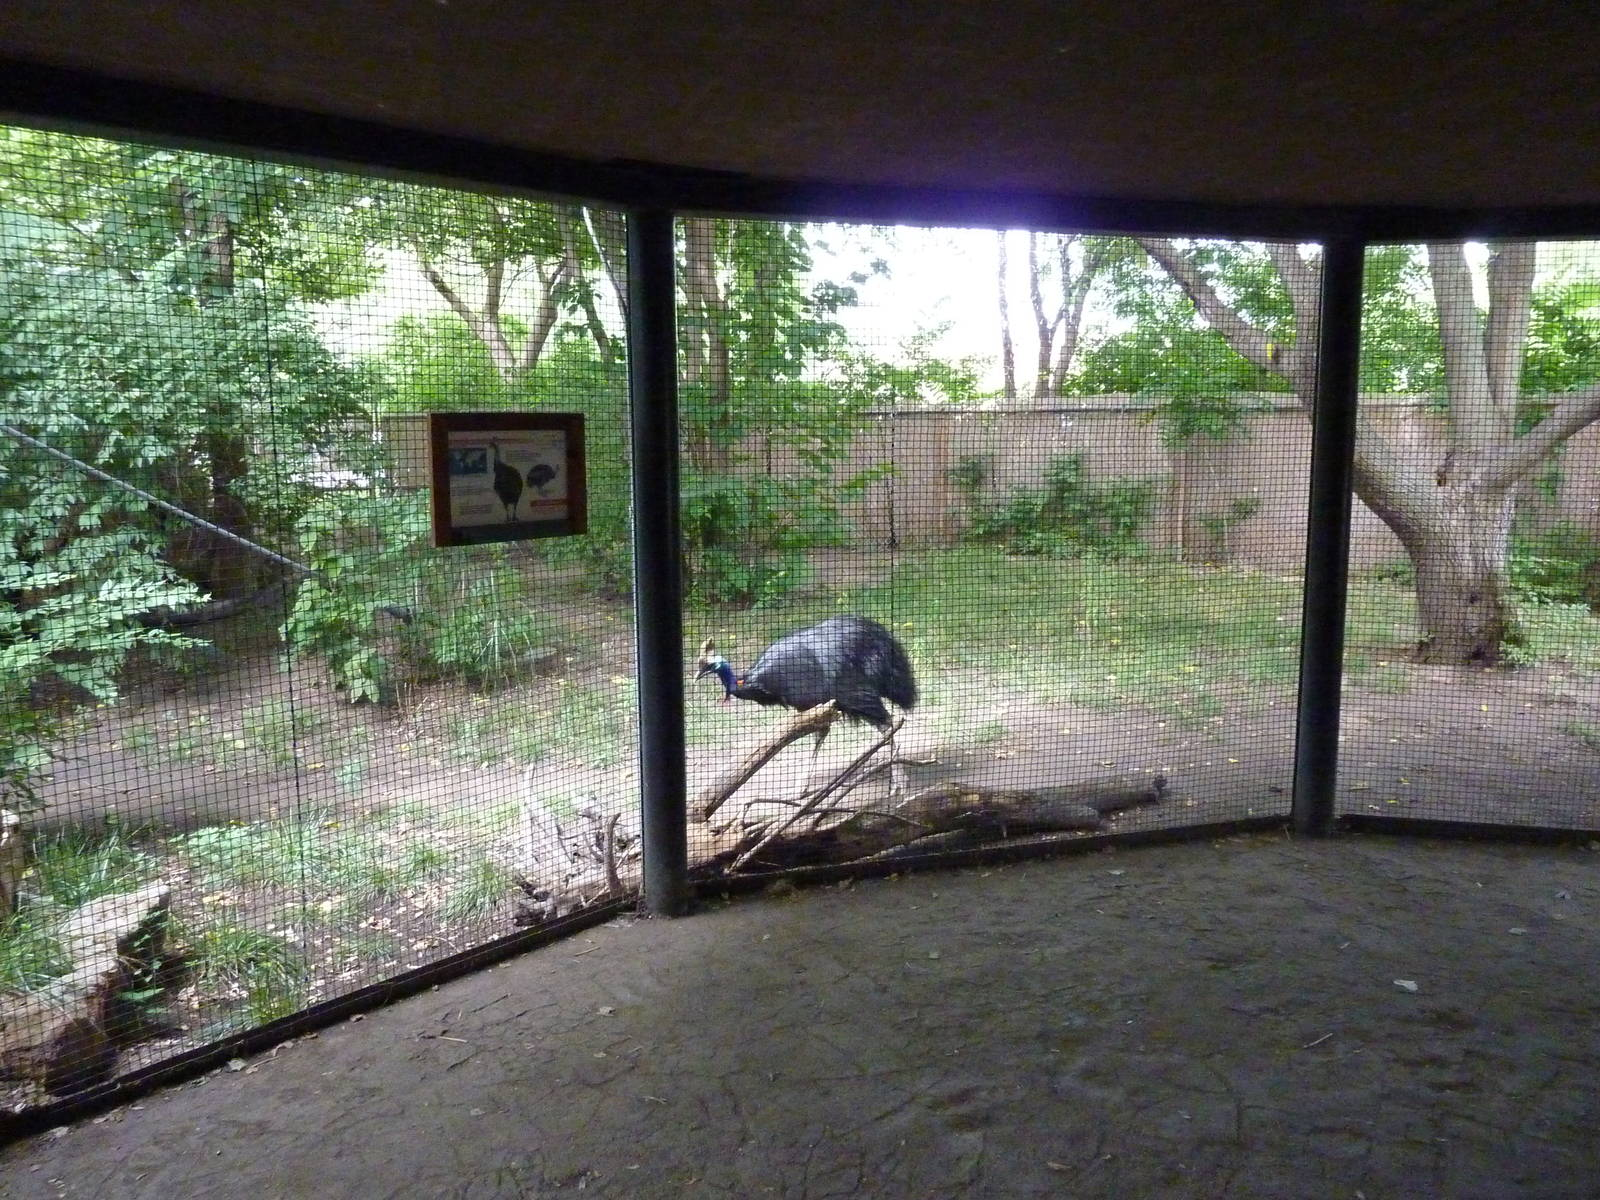 20+ Geese Cassowary Regular Show Pictures and Ideas on Meta Networks